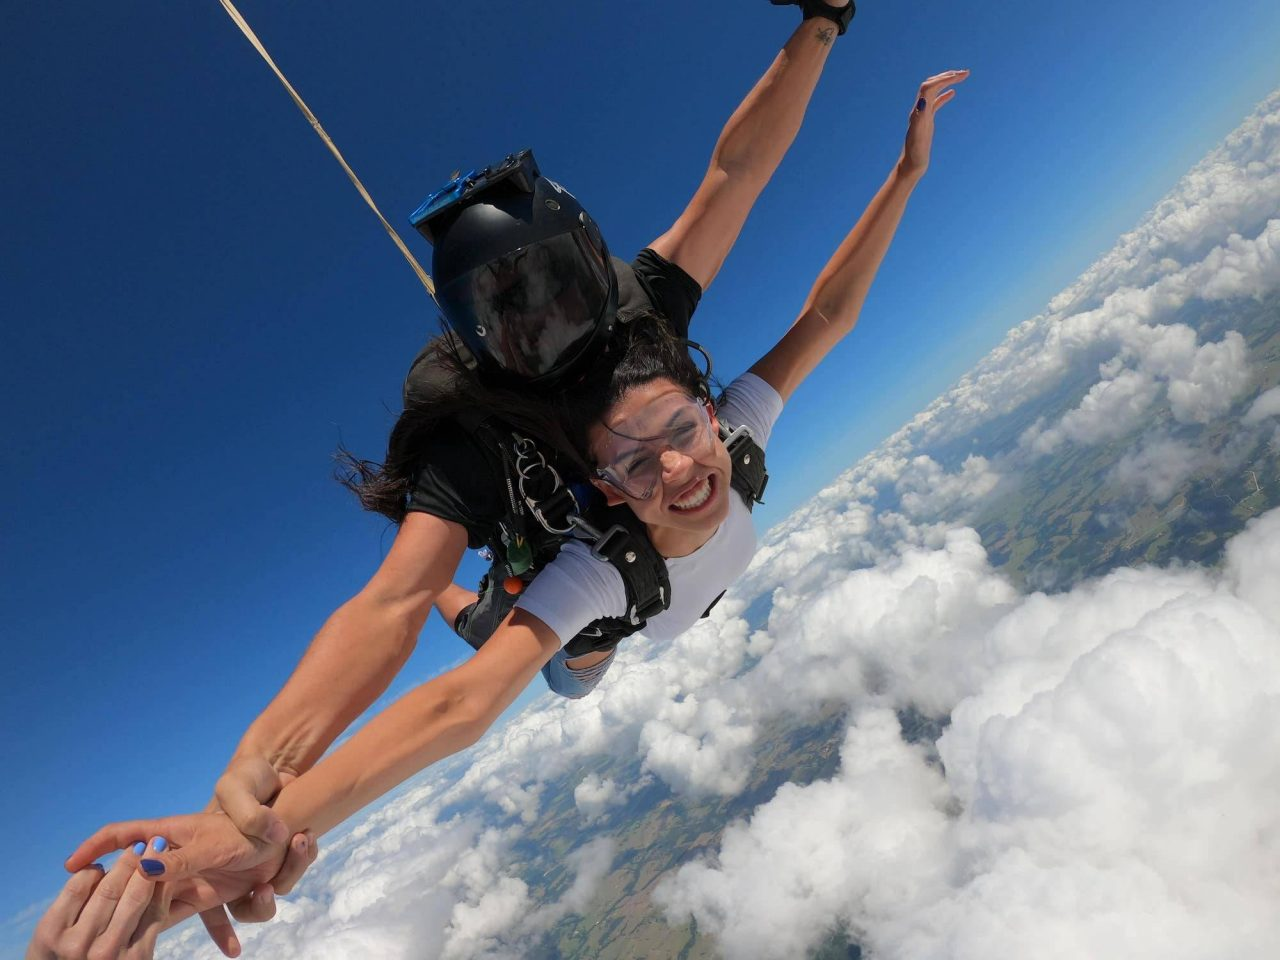 Women wearing white shirt smiles and touches hand with a fellow skydiver during free fall